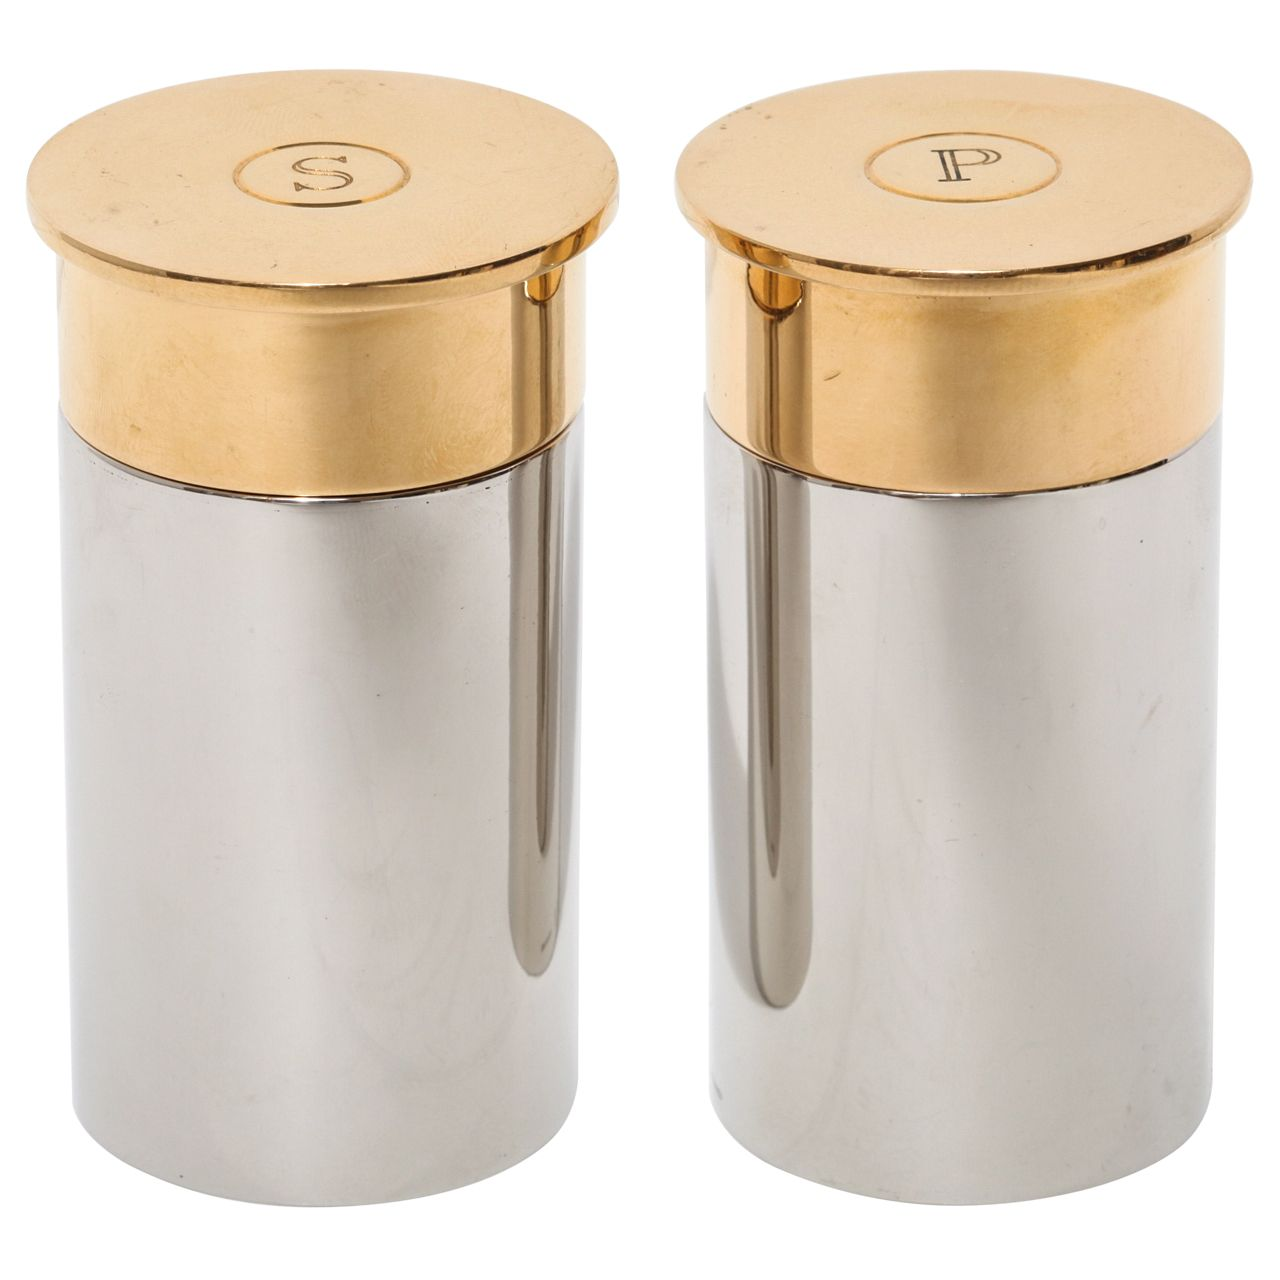 Hermes Bullet Salt And Pepper Shakers From A Unique Collection